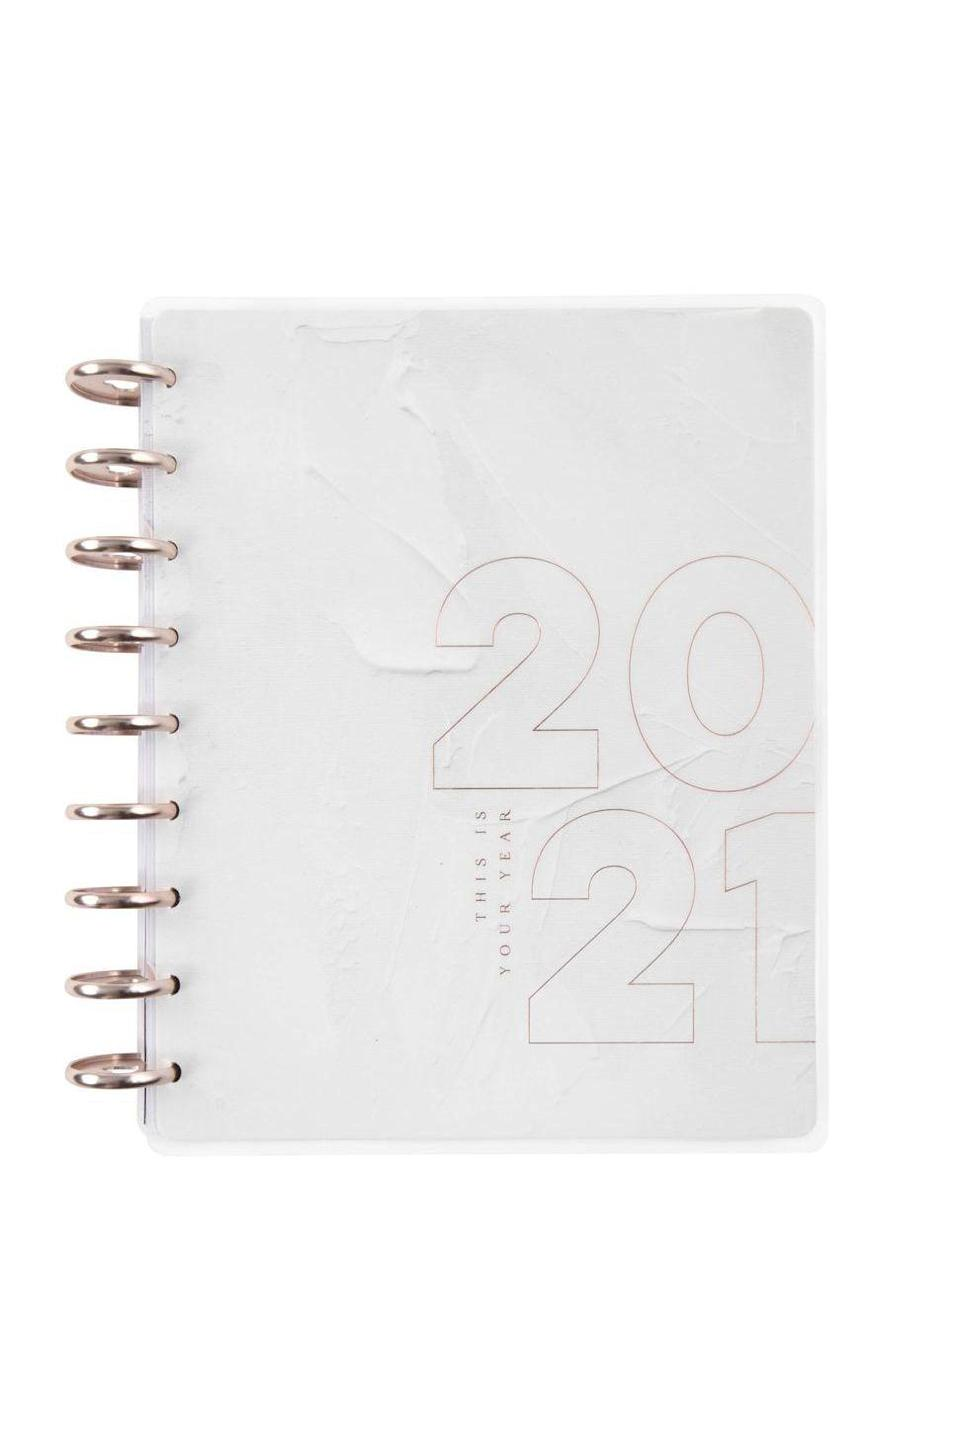 """<p><strong>The Happy Planner</strong></p><p><strong>$32.99</strong></p><p><a href=""""https://go.redirectingat.com?id=74968X1596630&url=https%3A%2F%2Fthehappyplanner.com%2Fcollections%2F2021-planners%2Fproducts%2Fdeluxe-classic-vertical-weekly-planner-minimalist-your-year-12-months&sref=https%3A%2F%2Fwww.marieclaire.com%2Fhome%2Fg33996666%2Fbest-planners-agendas-2021%2F"""" rel=""""nofollow noopener"""" target=""""_blank"""" data-ylk=""""slk:SHOP IT"""" class=""""link rapid-noclick-resp"""">SHOP IT</a></p><p>Perfect for teachers, students, and busy executives alike, this minimalist Happy Planner is complete with goal-setting, action steps, and reflection, is a go-to for anybody who's hoping to start off the year with positive vibes. </p>"""